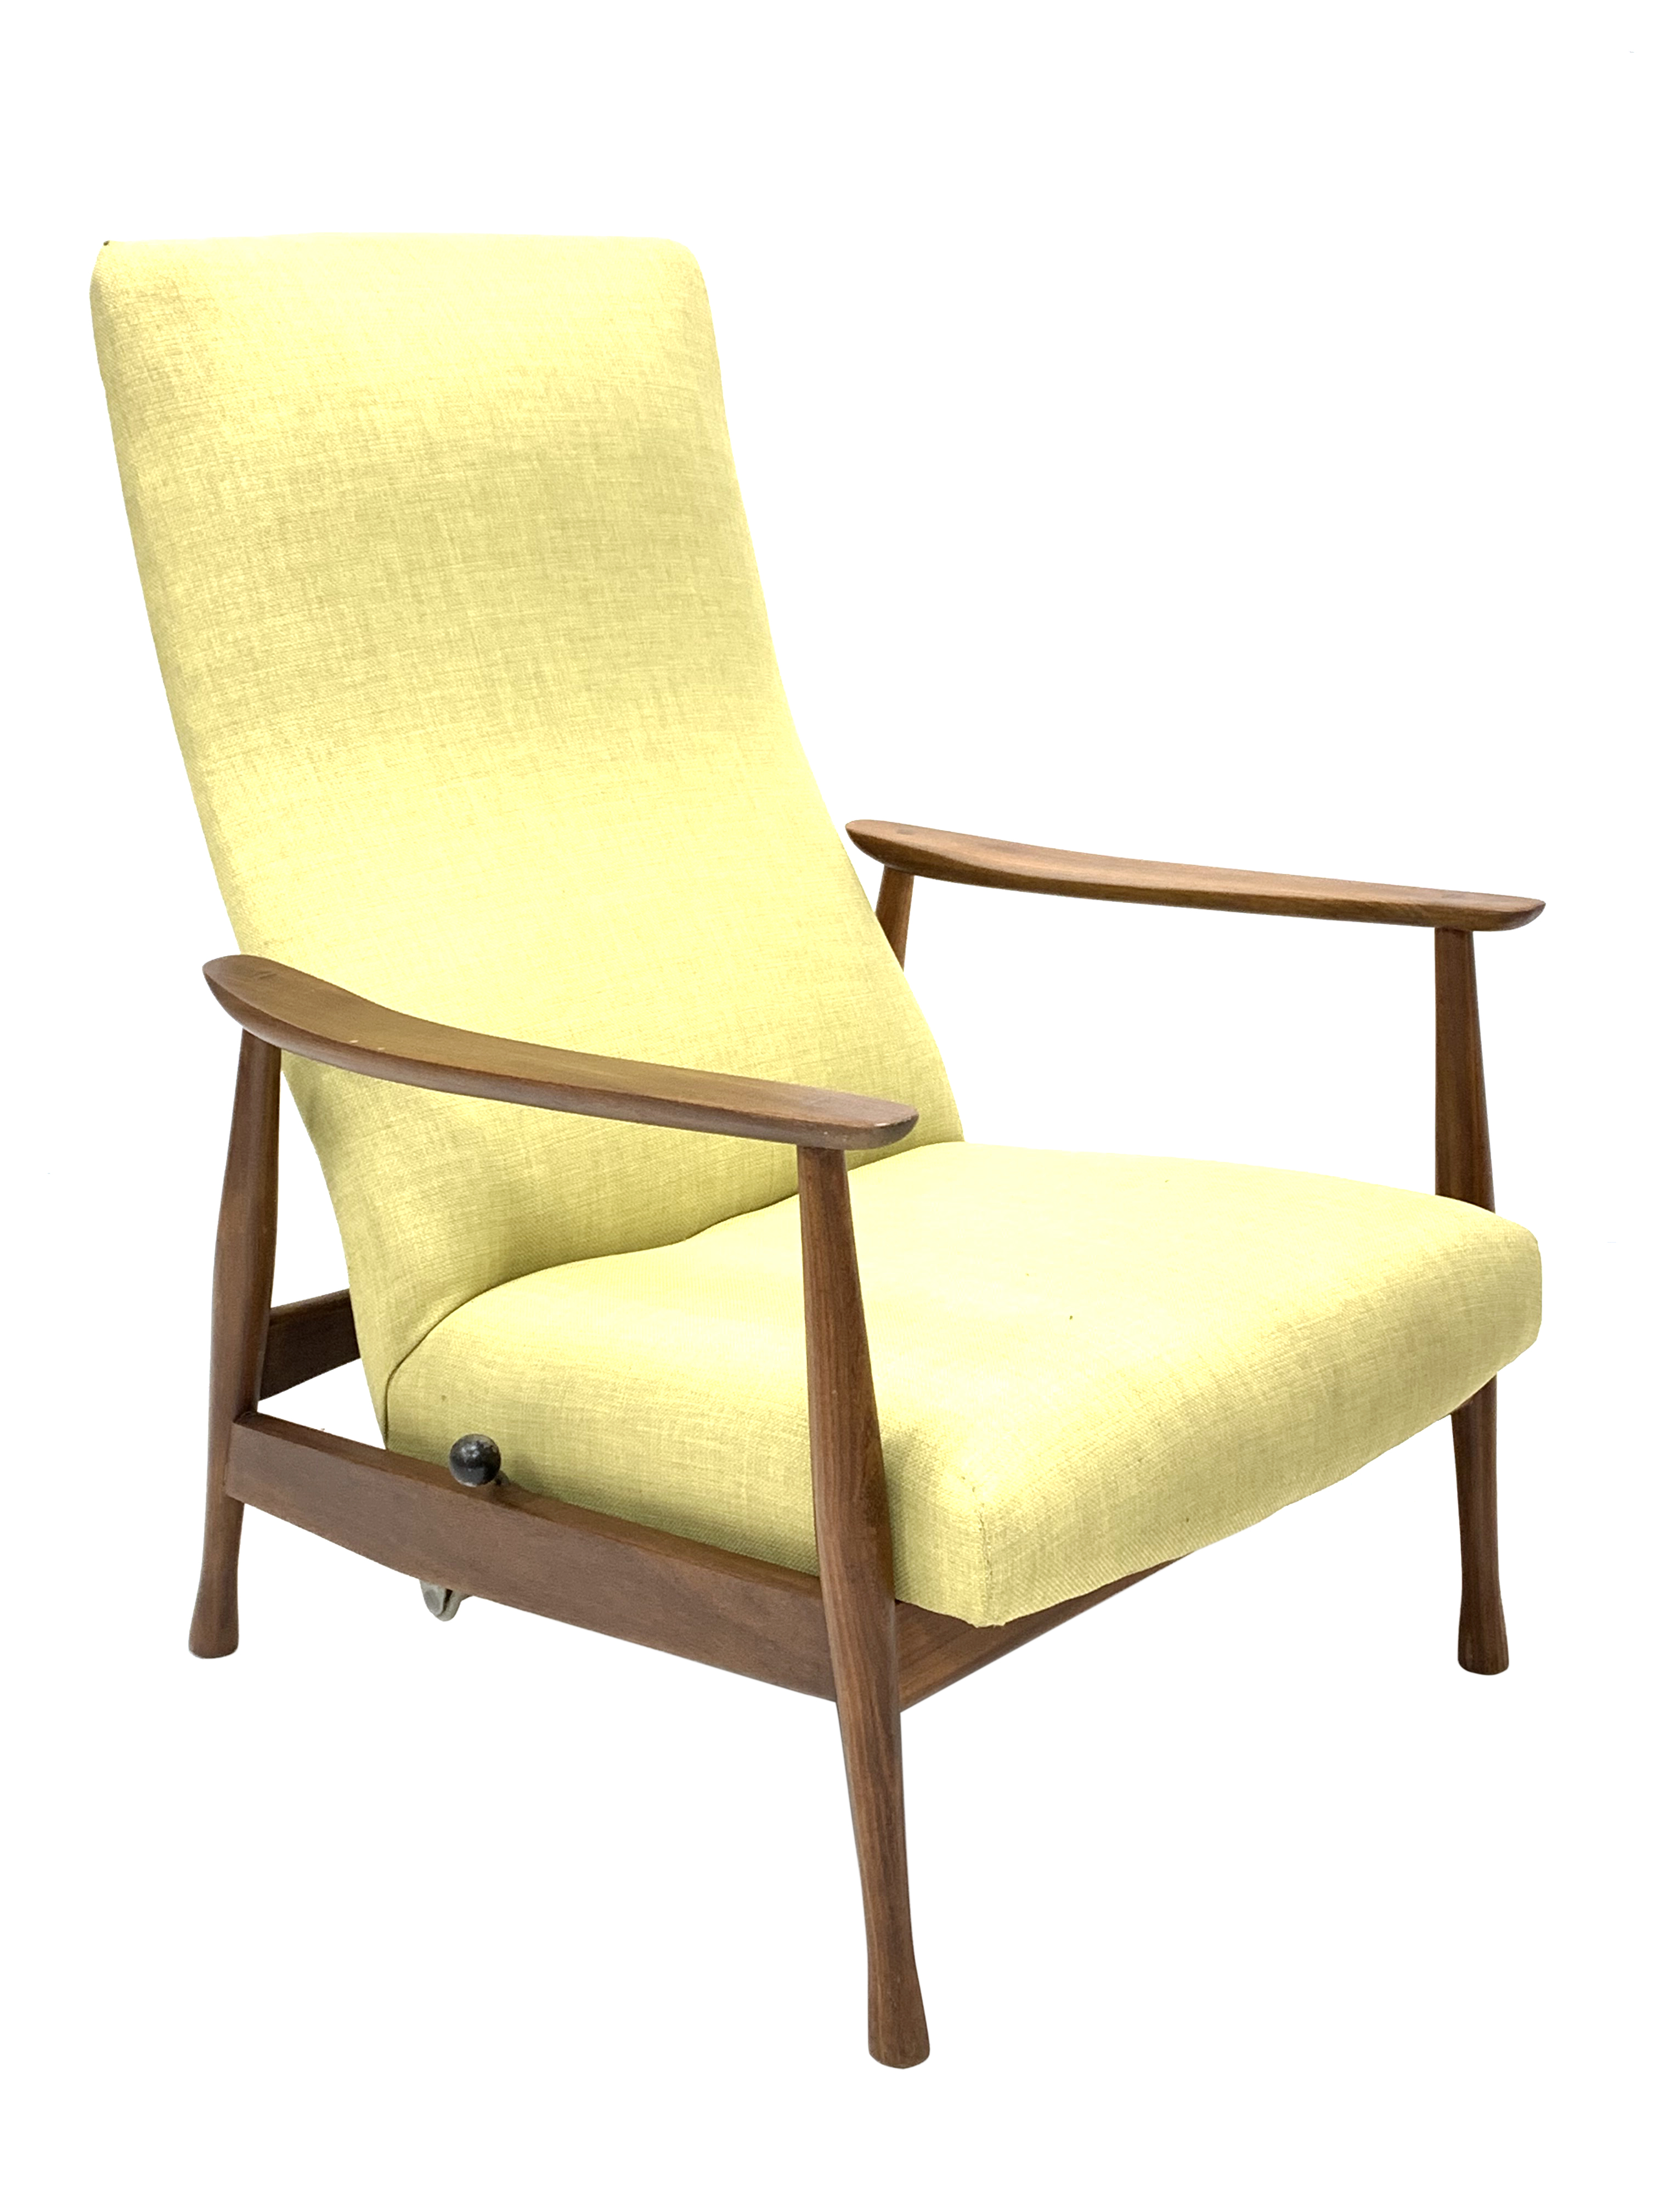 Milo Baughman - Danish teak framed rocking and reclining lounger armchair with rest lever,